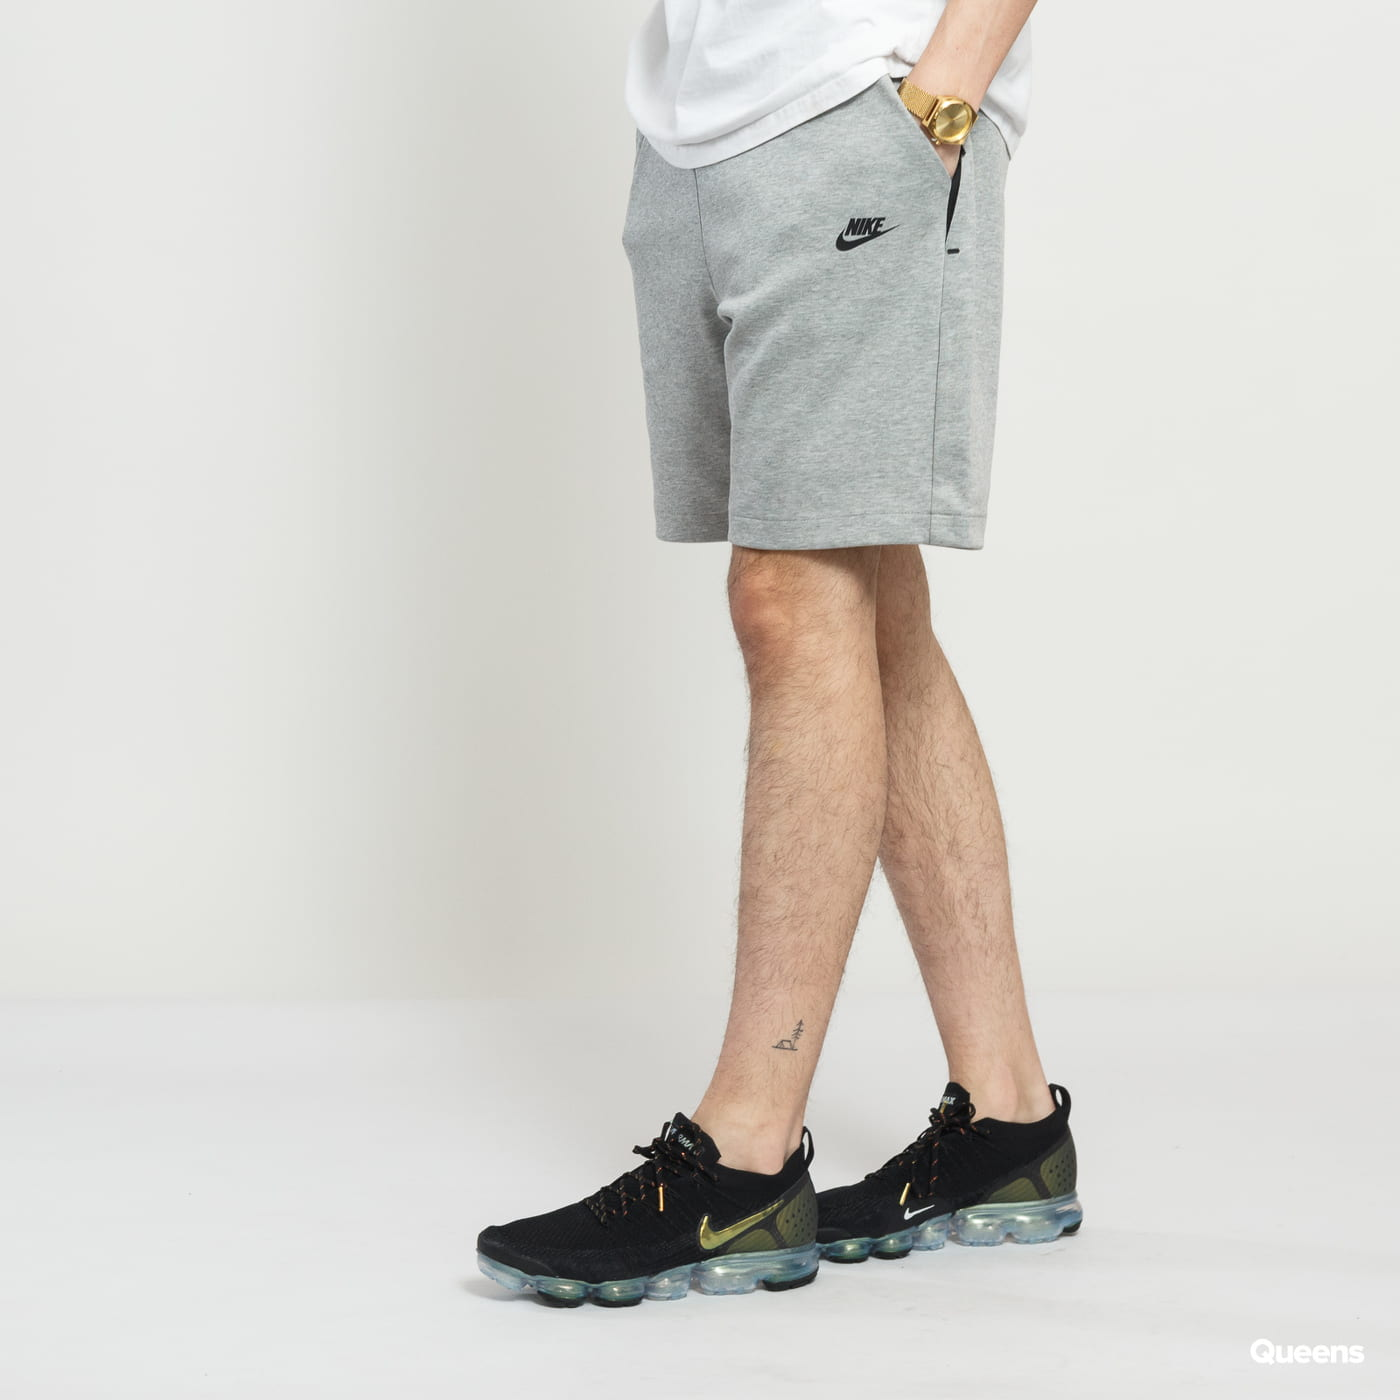 Nike M NSW Tech Fleece Short melange šedé